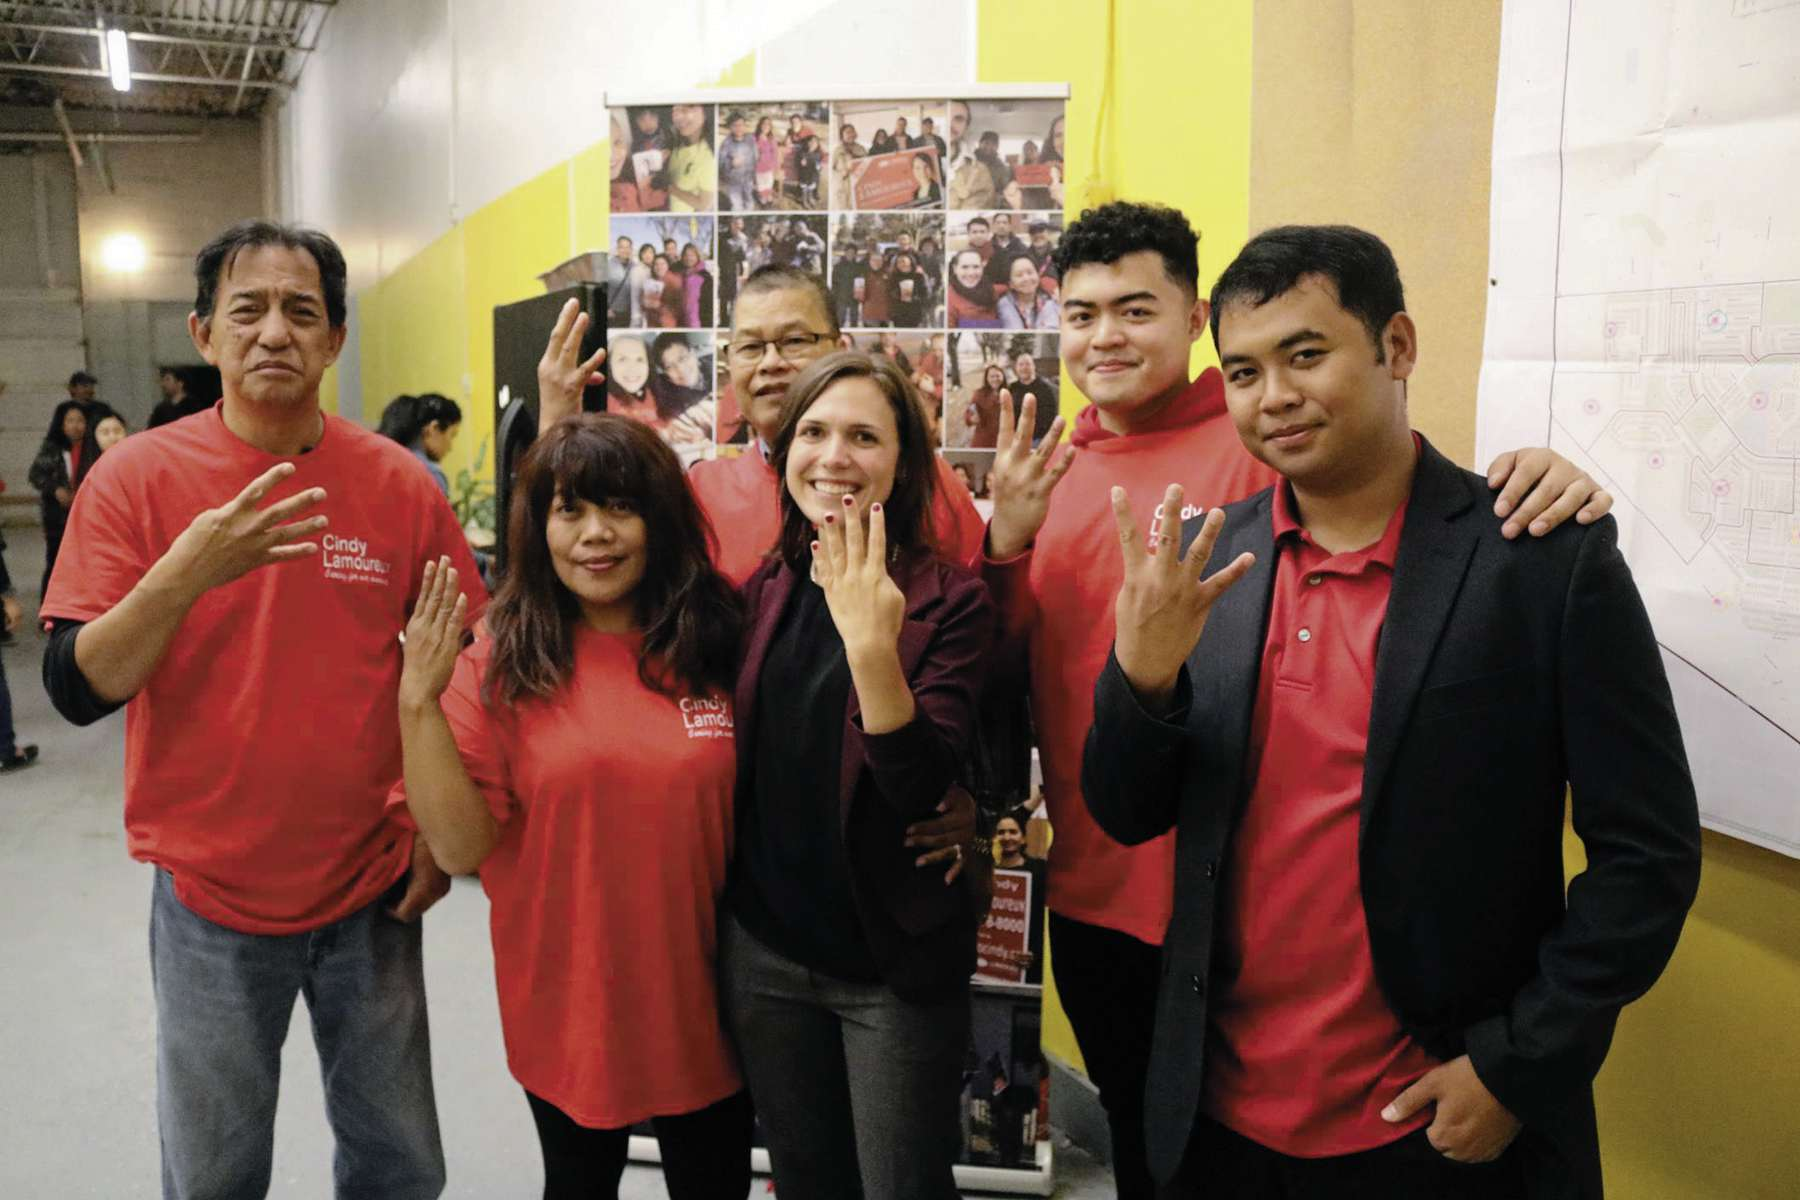 Cindy Lamoureux, Liberal MLA-elect for Tyndall Park, and some of her supporters signal that she's headed for four more years at the Manitoba Legislature.